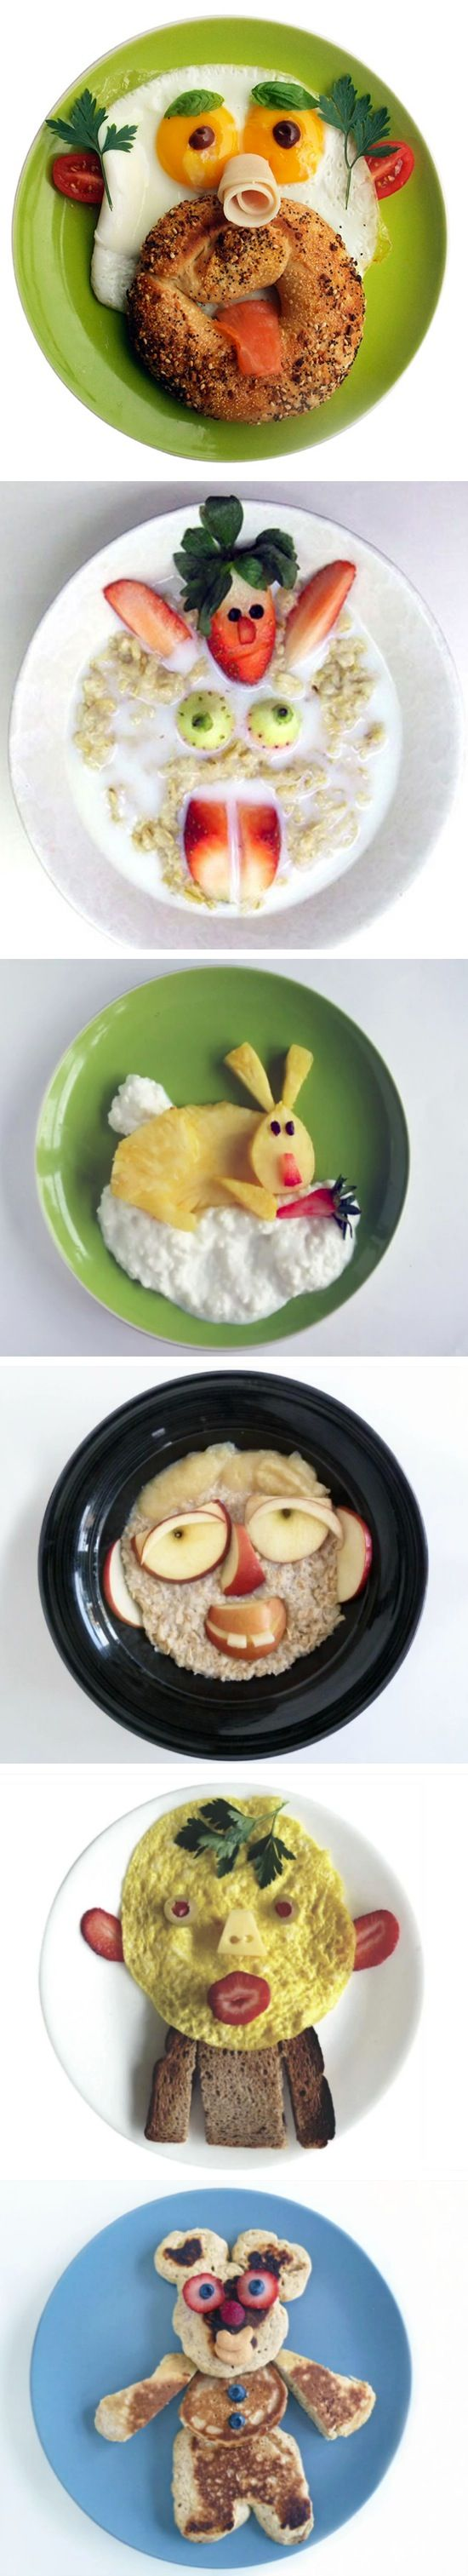 Lots of creative breakfast ideas!